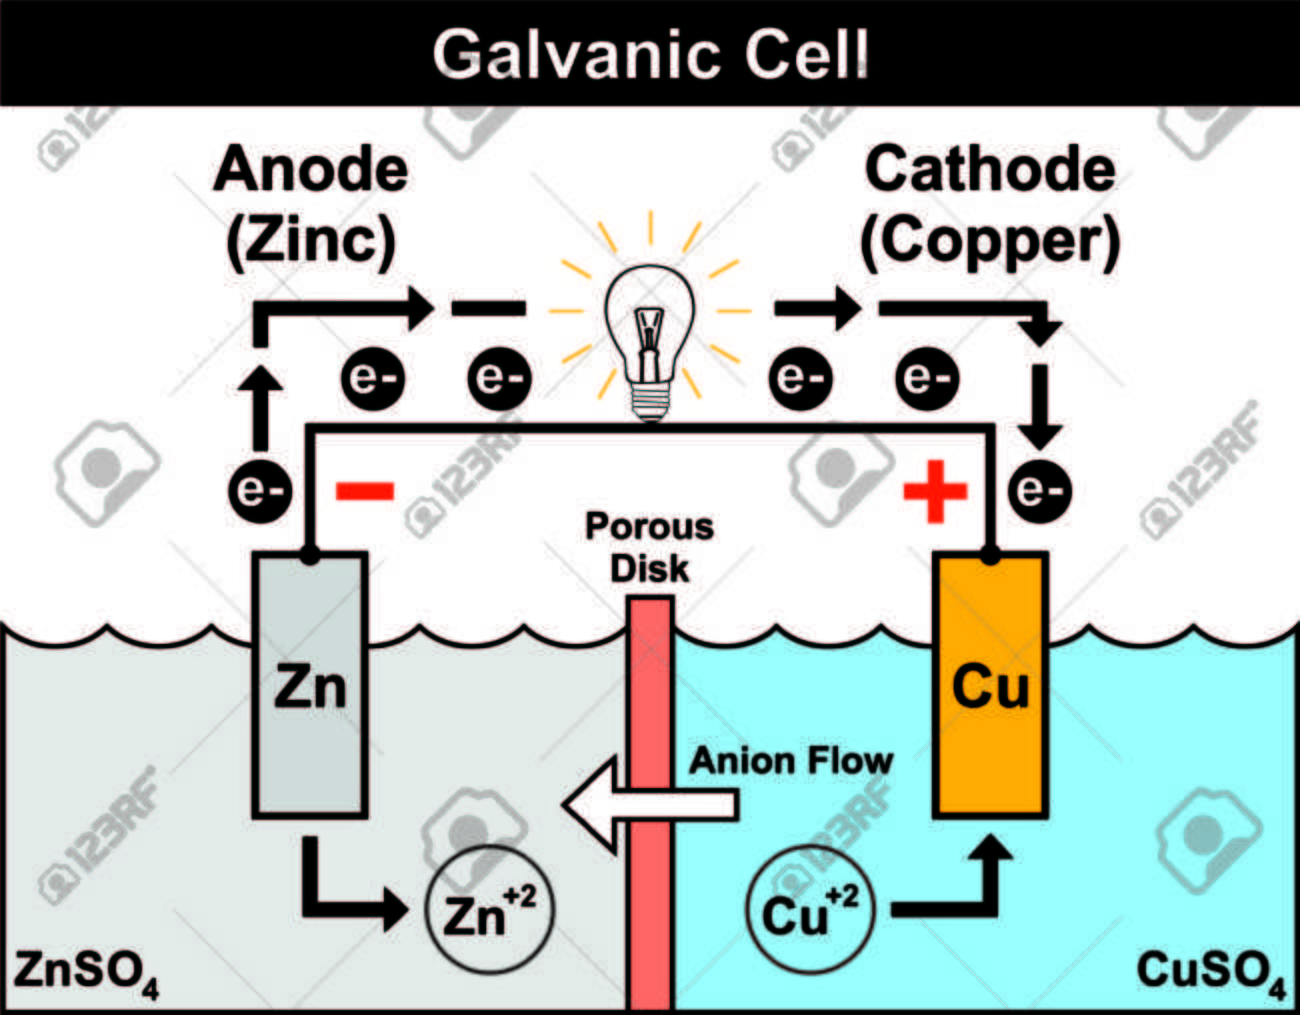 Galvanic cell simple easy to understand with zinc anode copper galvanic cell simple easy to understand with zinc anode copper cathode electron flow from ccuart Images